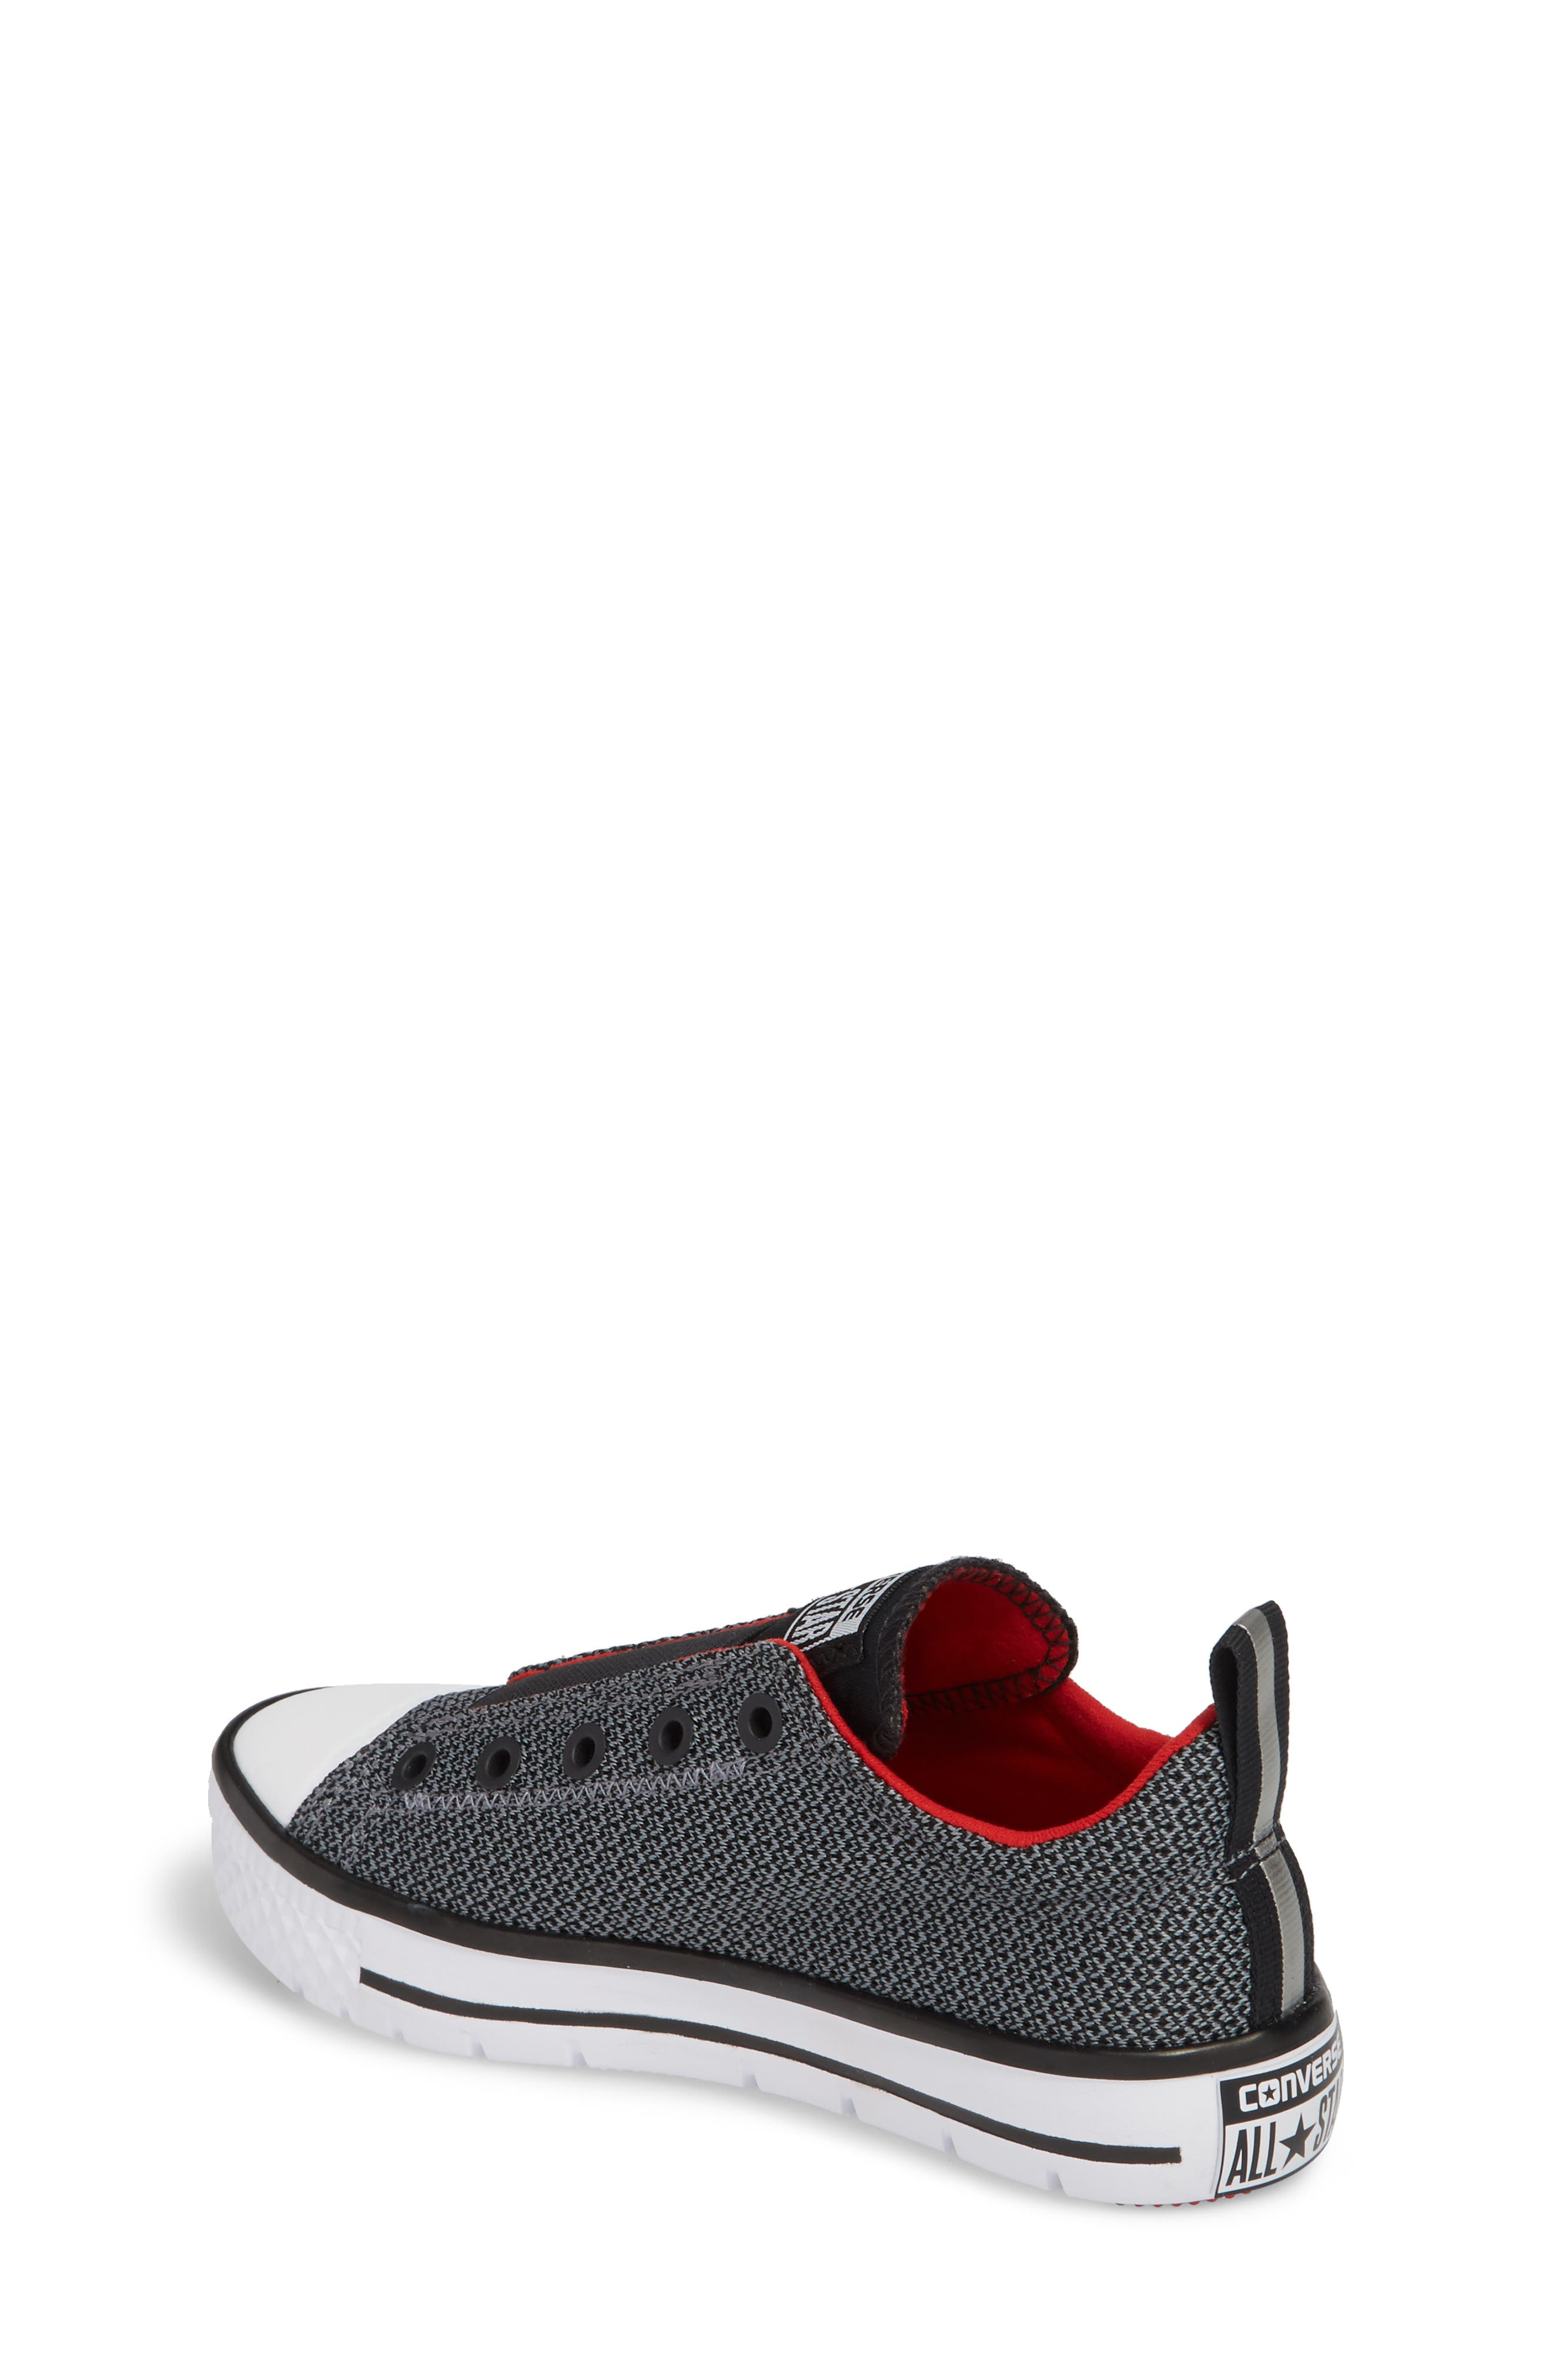 Chuck Taylor<sup>®</sup> All Star<sup>®</sup> Hyper Lite Ox Slip-On Sneaker,                             Alternate thumbnail 2, color,                             Cool Grey